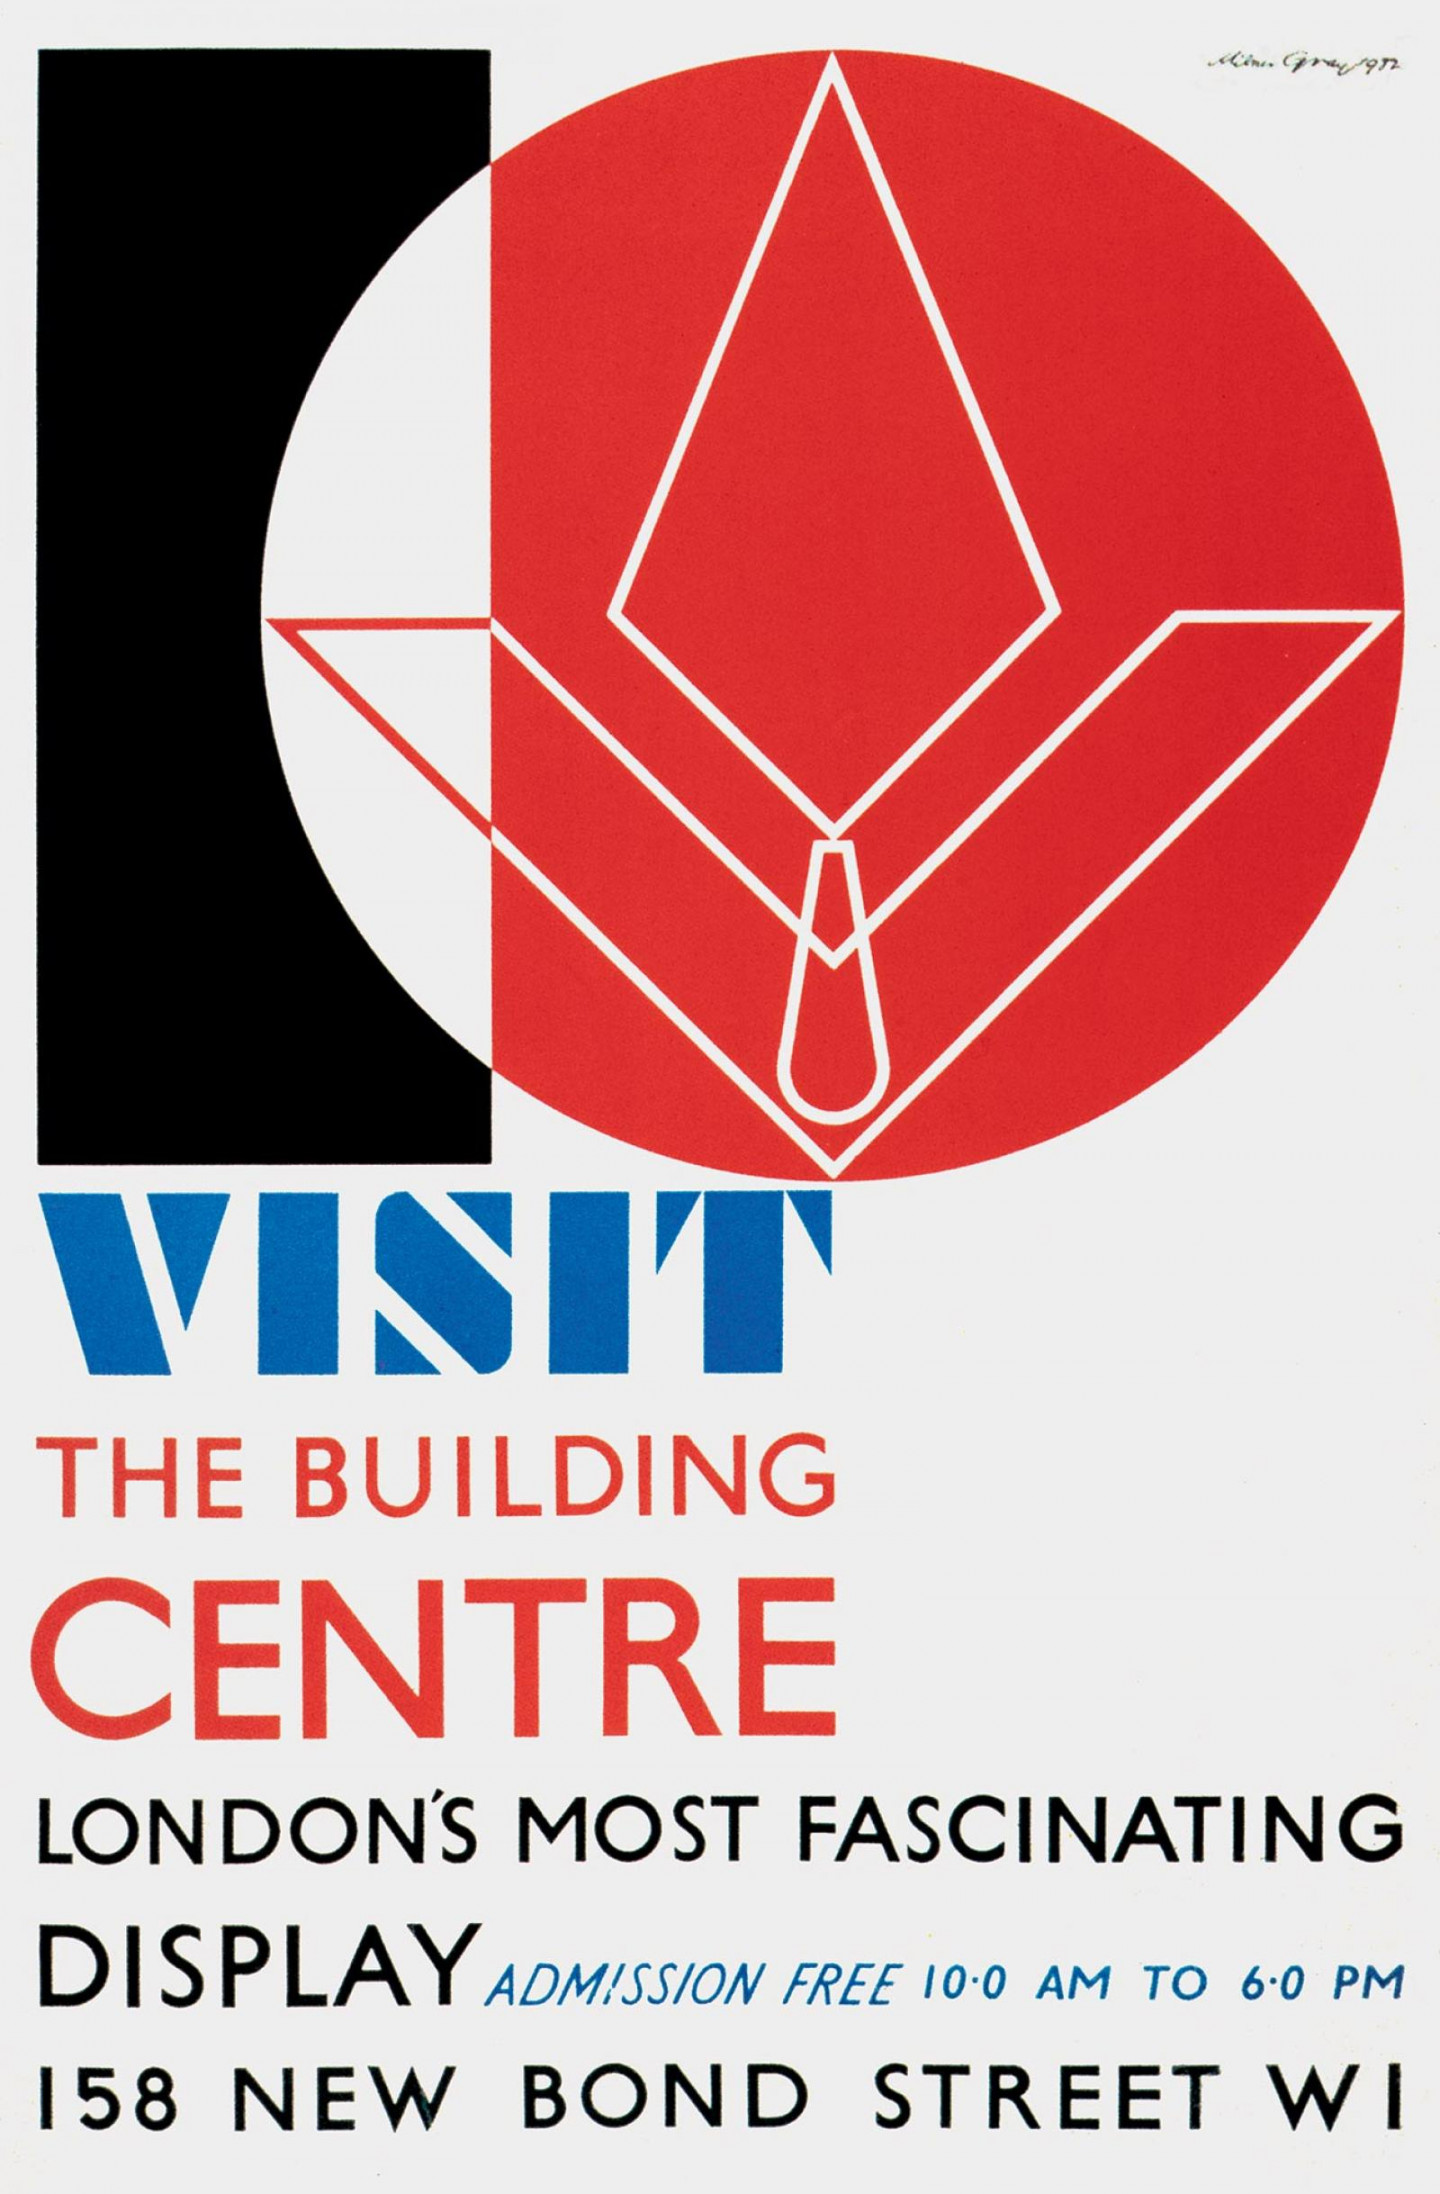 © Building Centre archive